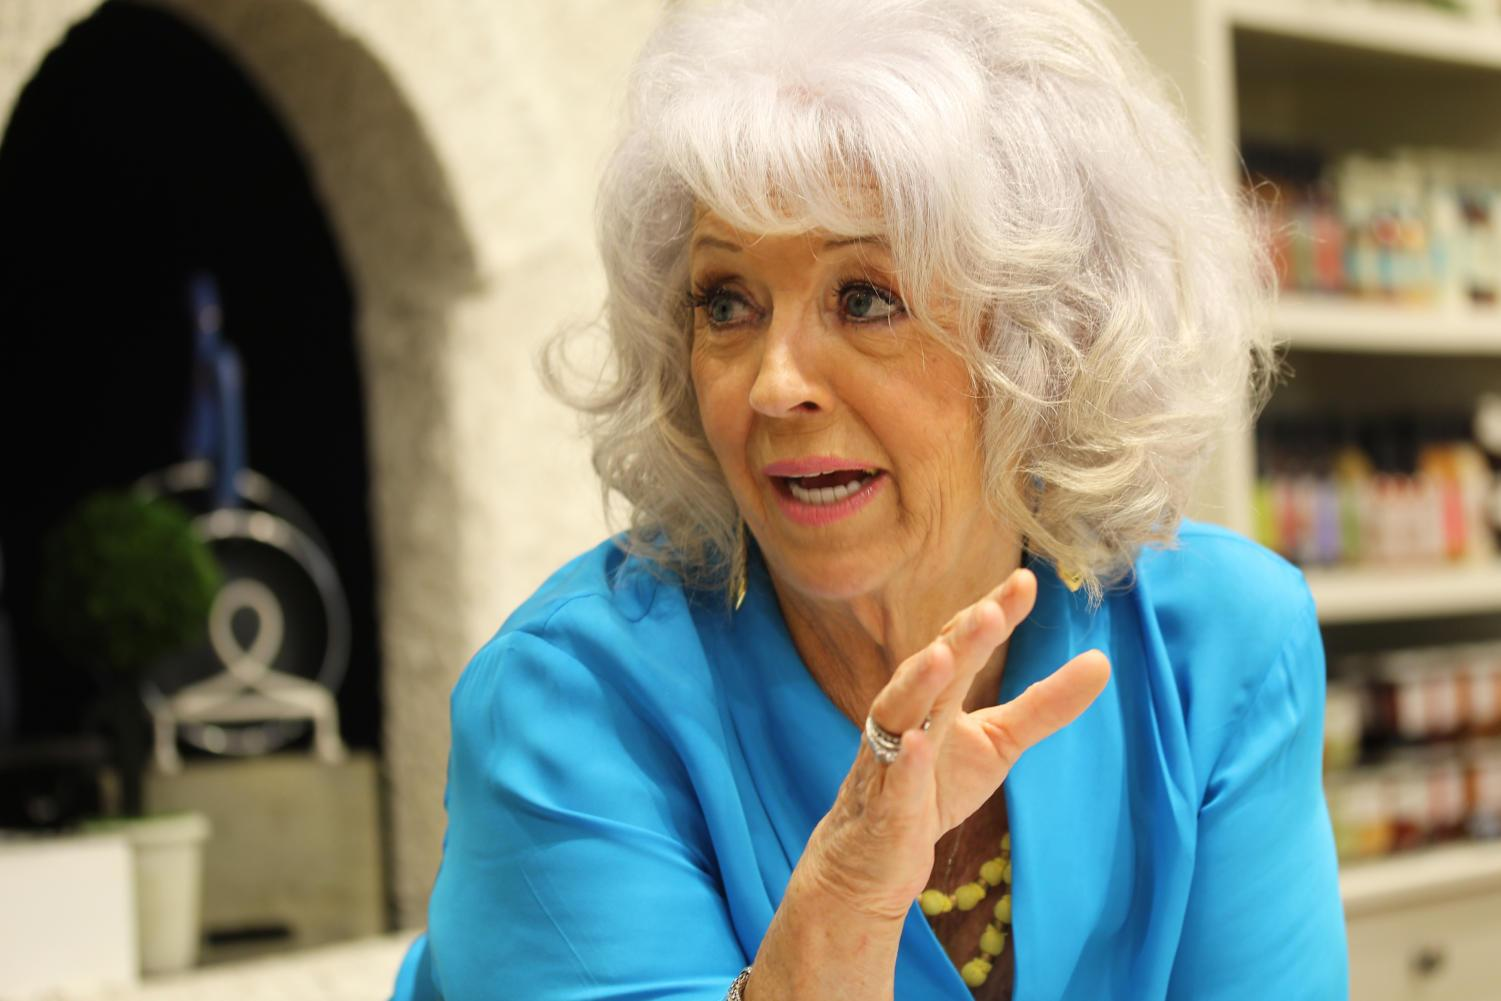 Famous chef Paula Deen answers a question in her new restaurant located in the Villages of Fairview.